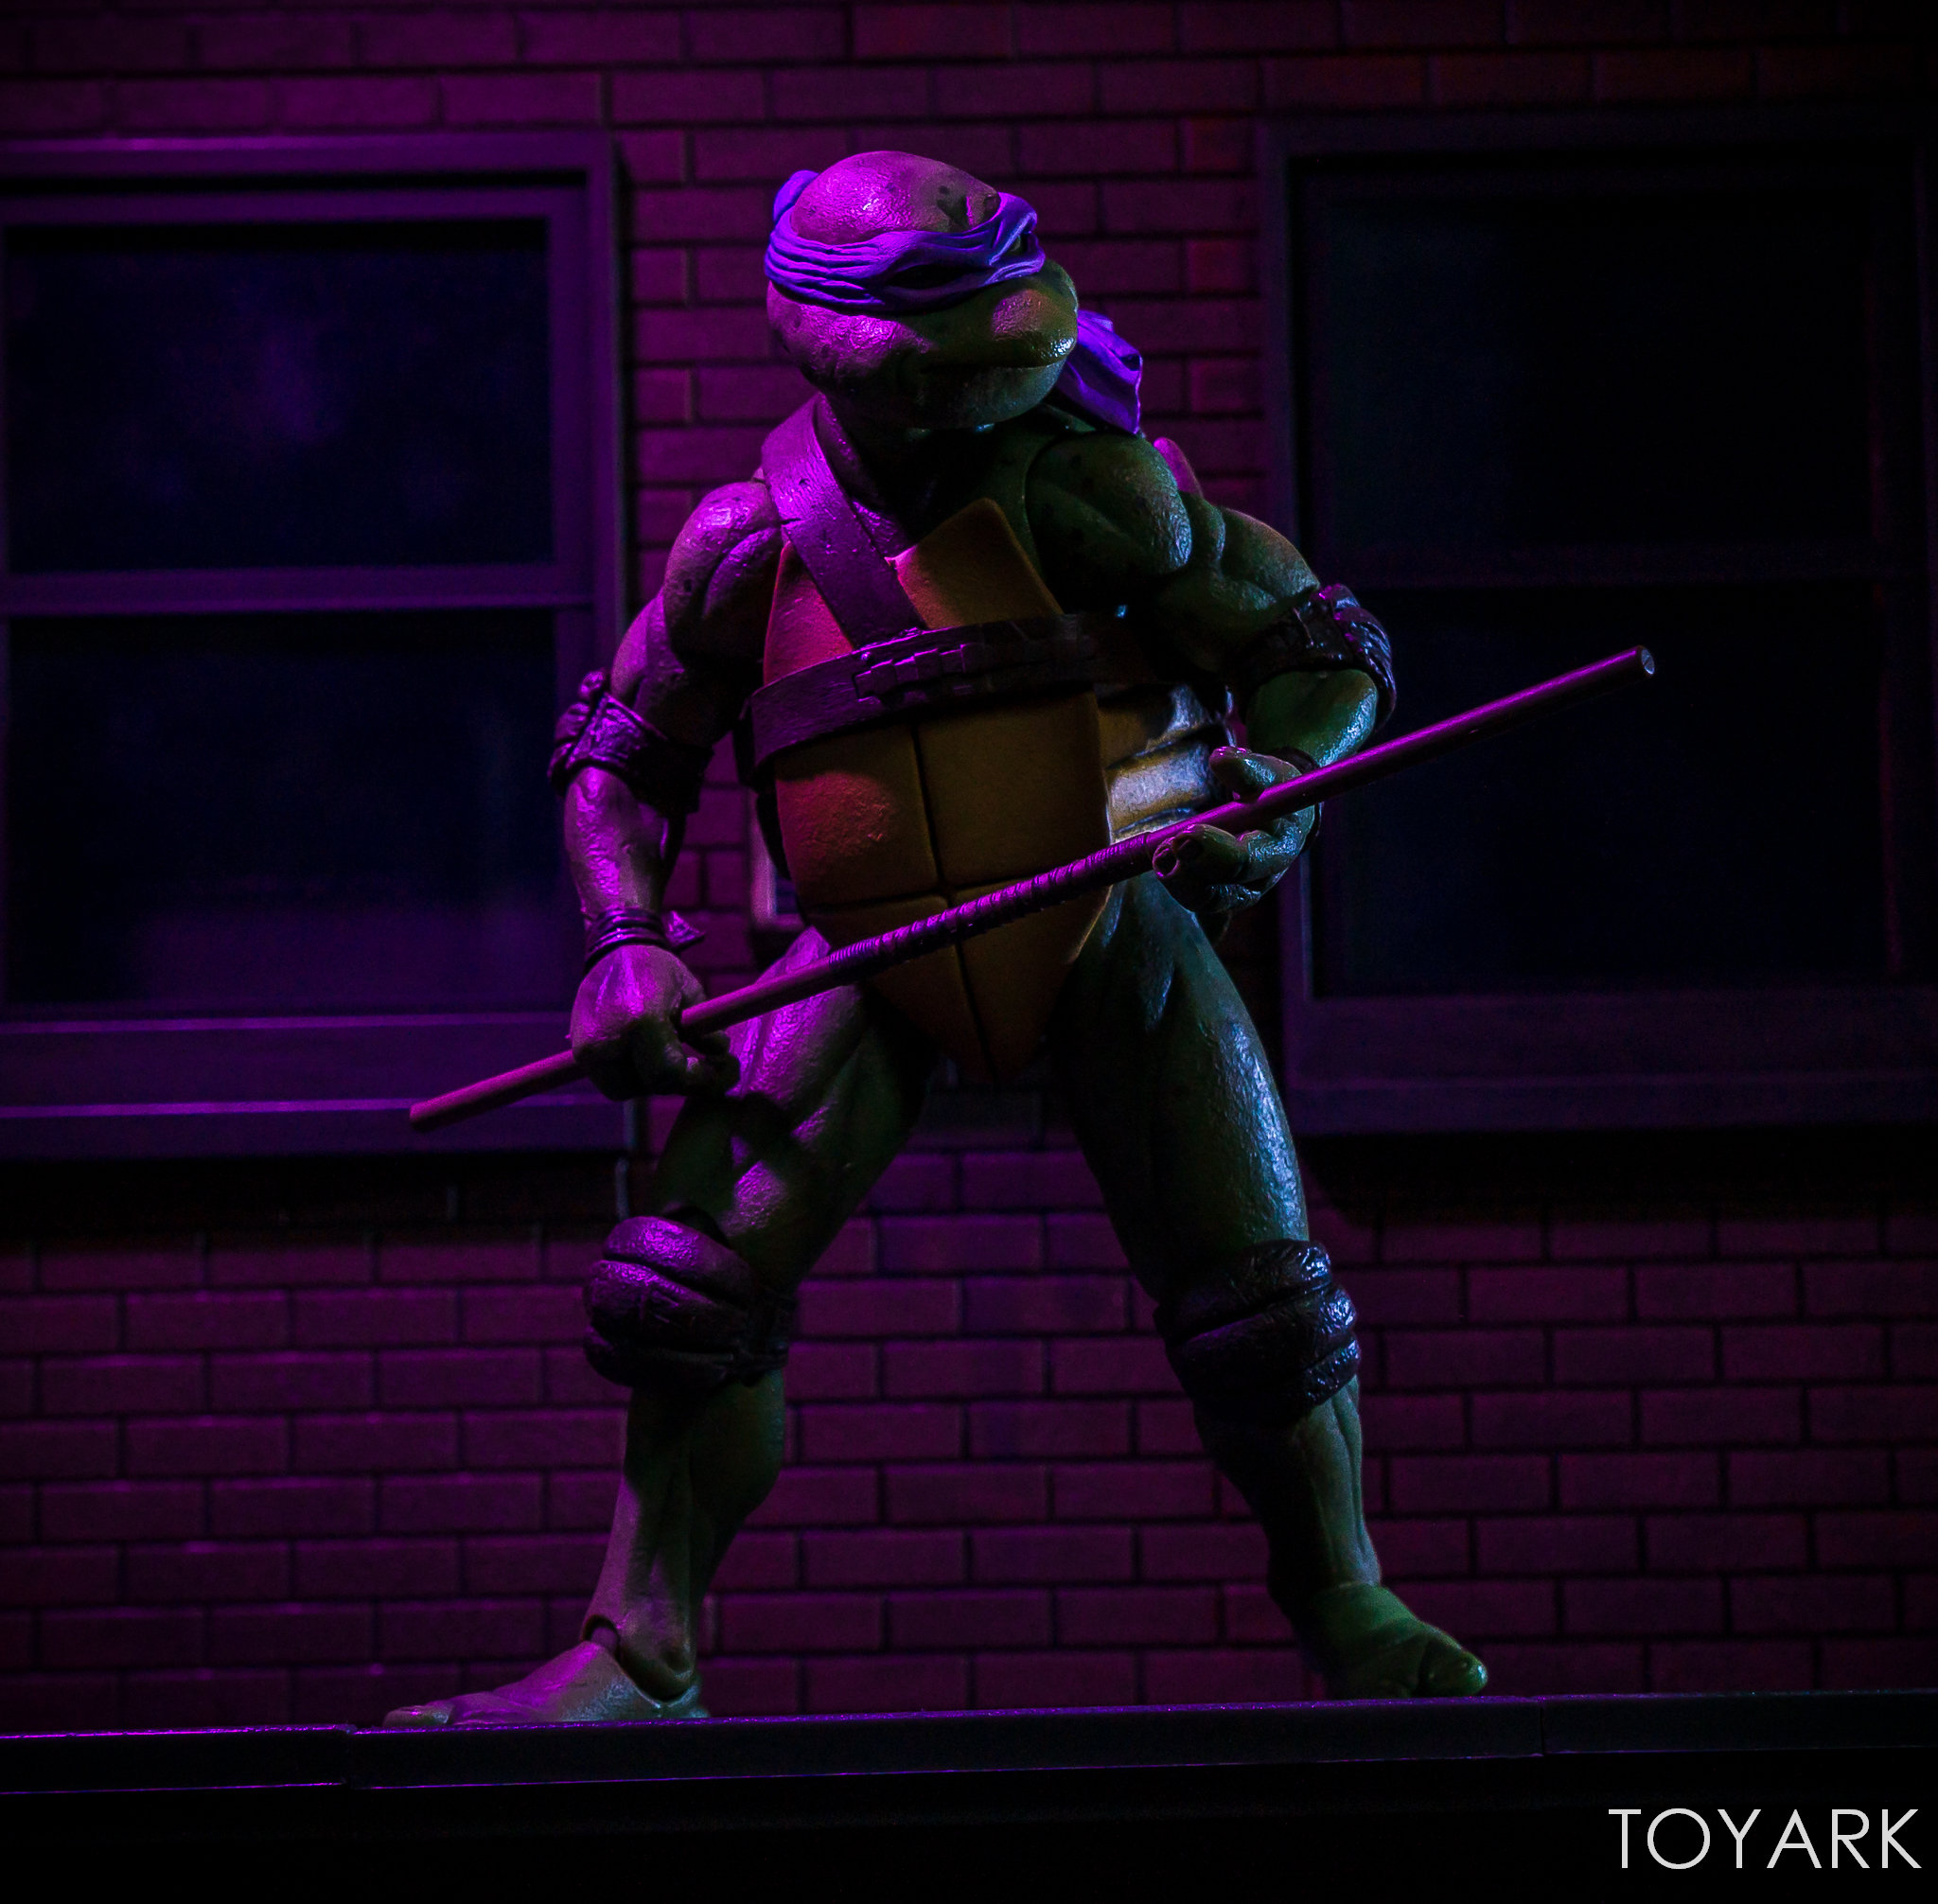 https://news.toyark.com/wp-content/uploads/sites/4/2018/07/NECA-TMNT-1990-and-Dio-Set-092.jpg